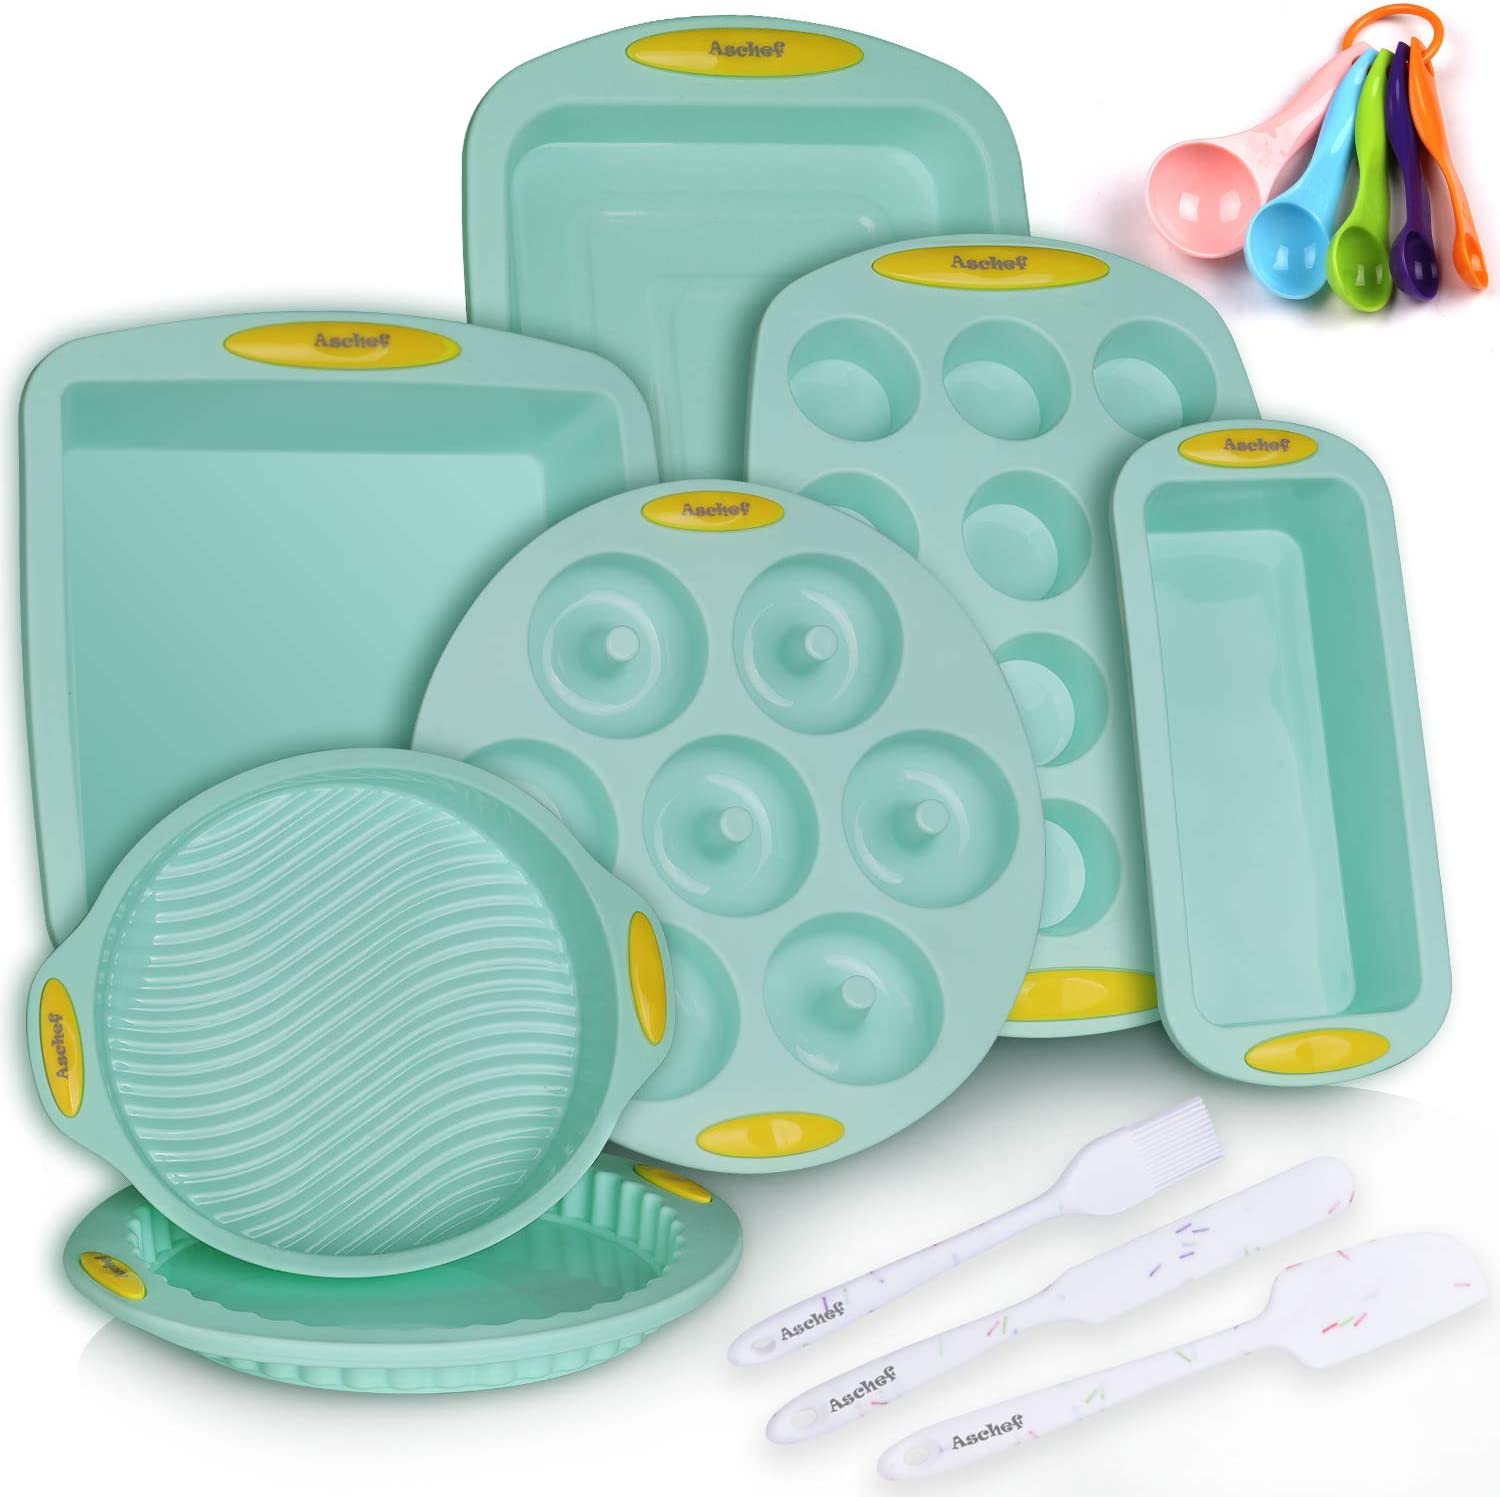 15in1 Solicone Nonstick Baking Pans Mold Tray Supplies Tools Bakeware Set, BPA Free Food Grade for Muffin Donuts Pizza Tiramisu Cake Pan Cookie Sheets Cookware Set with Yellow Hanlde Grip for Oven